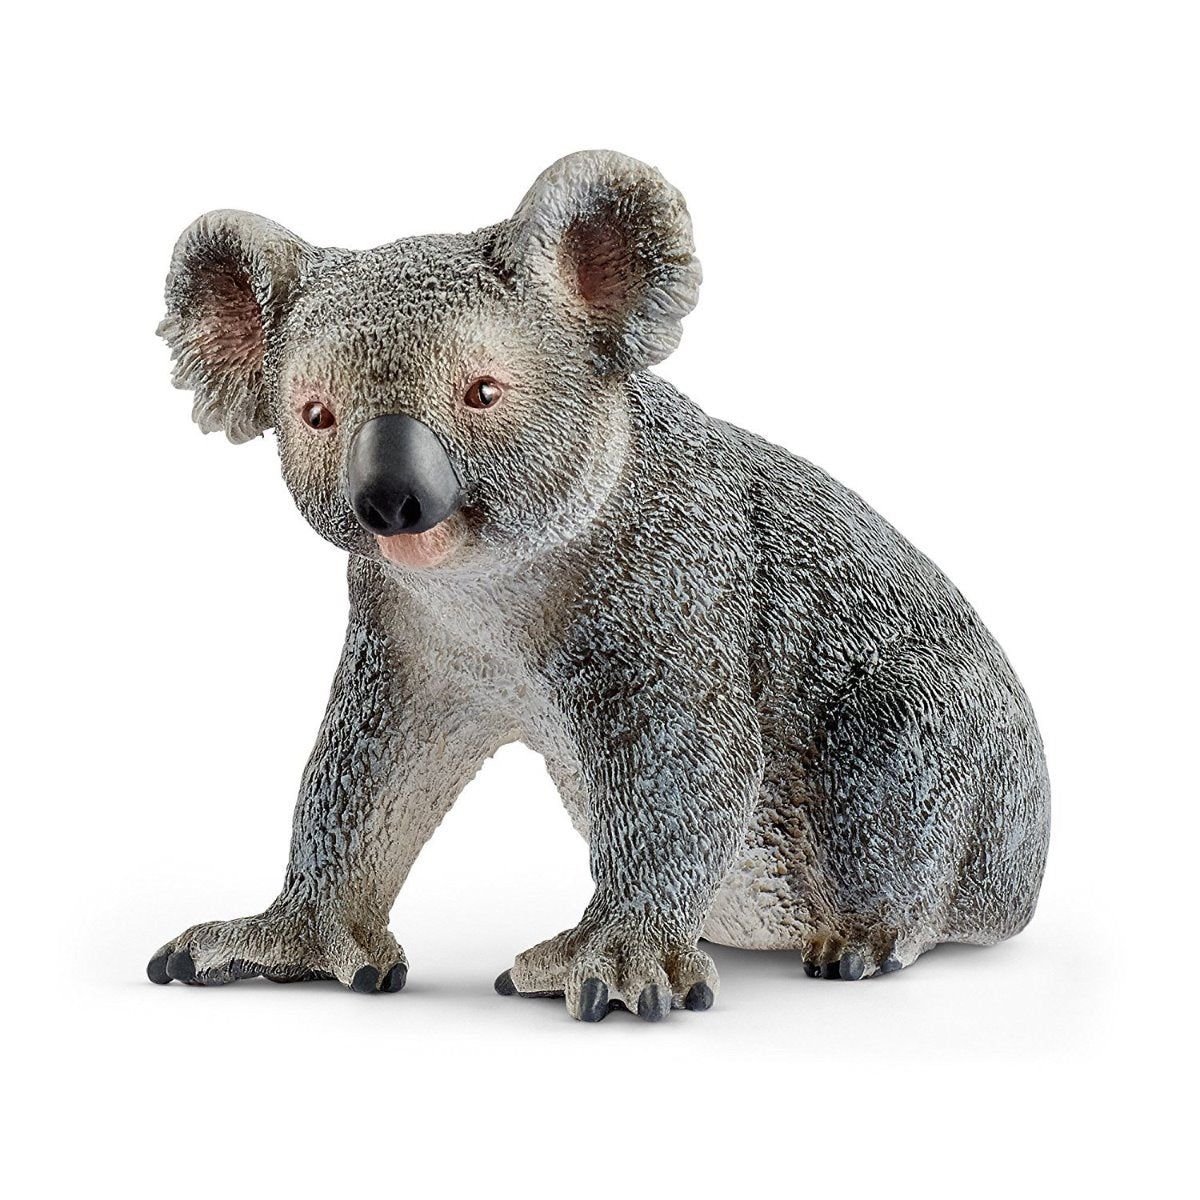 Schleich 14815 Koala available at Little Sprout